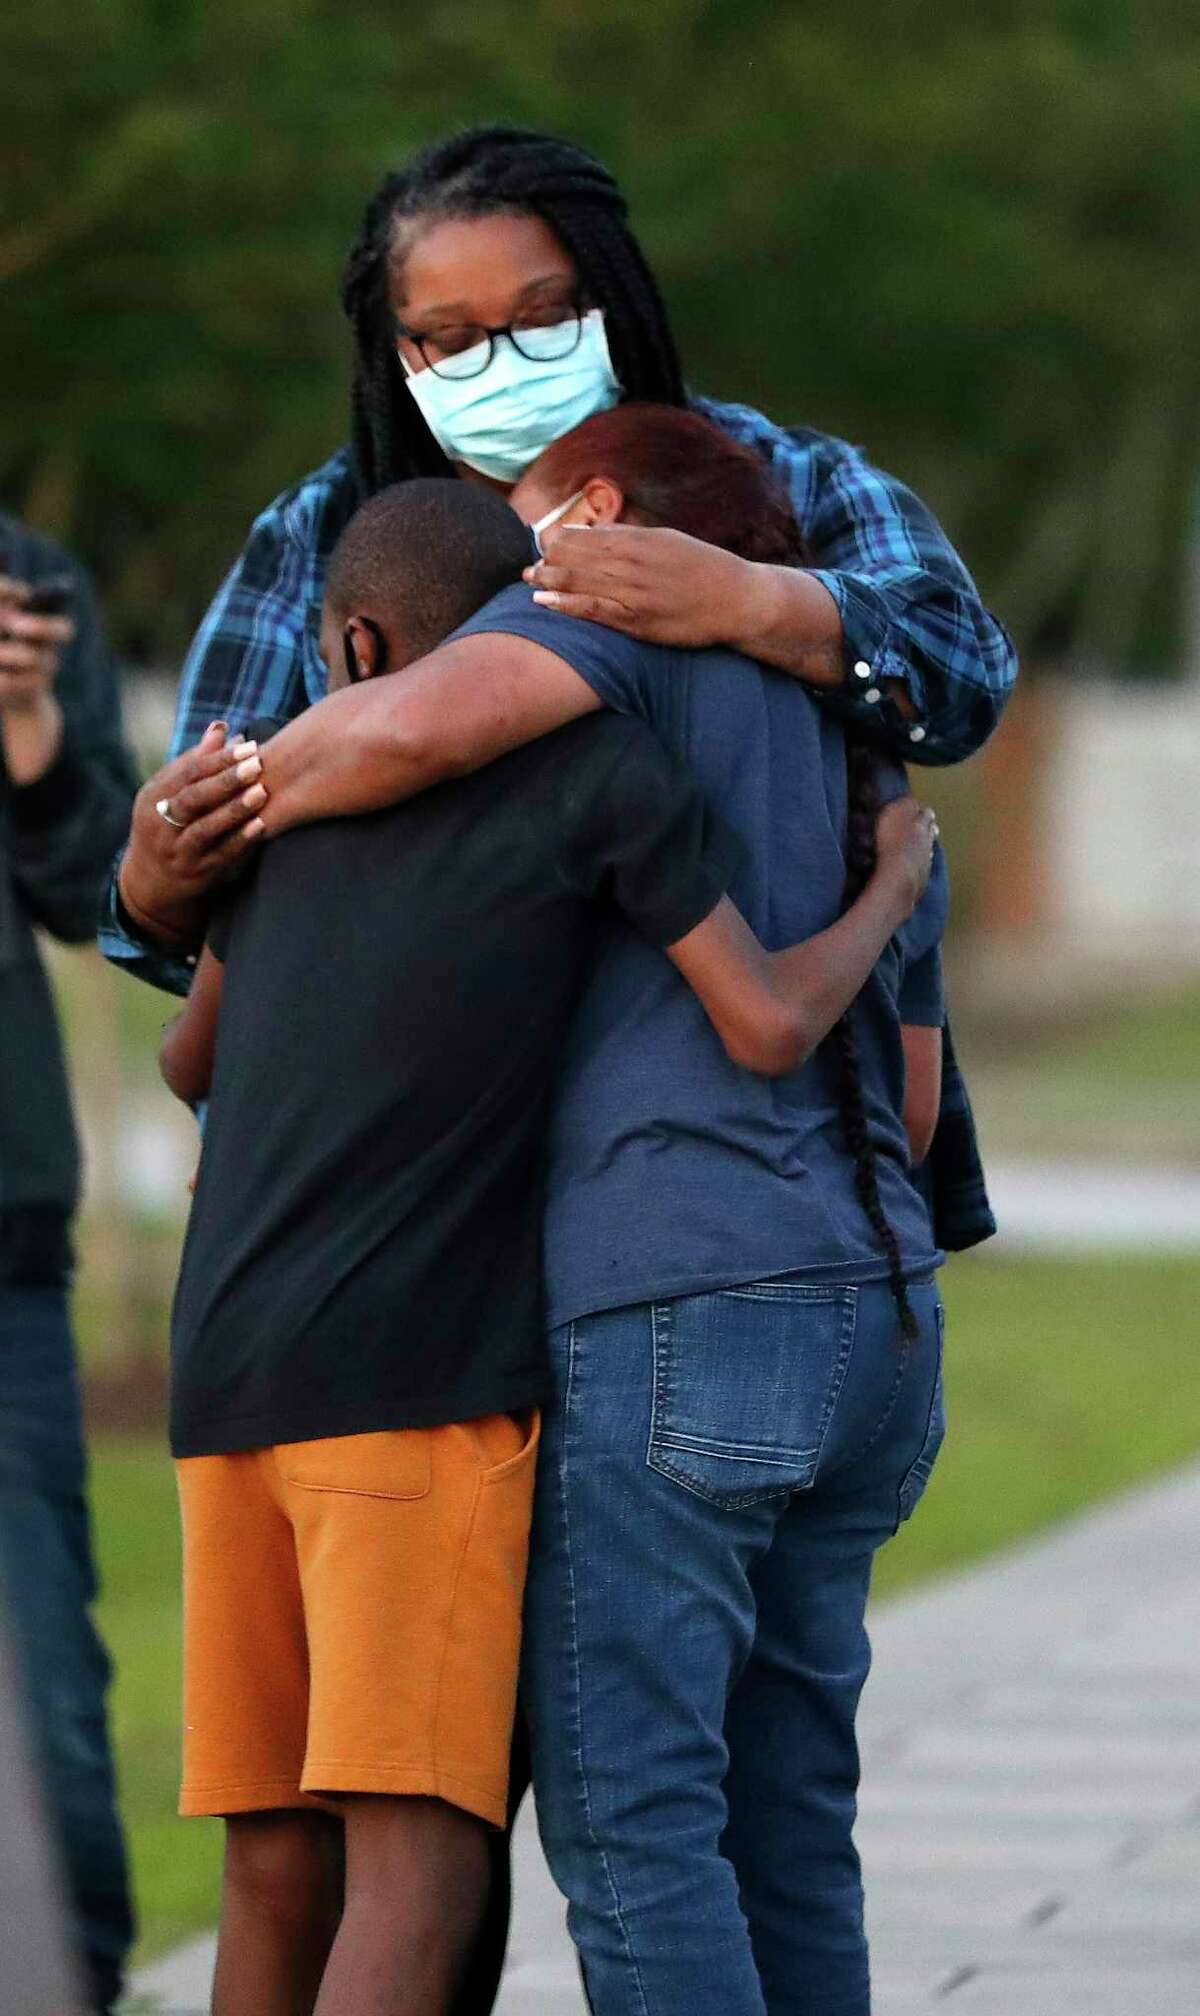 Janie Torres, sister of José Campos Torres, who was killed by police in Houston in 1977 gets a hug from Rodney Henry, 11, and Nykeisha Bryer during a vigil at MacGregor Park after they learned the guilty verdict on all counts in the murder trial of former Minneapolis Officer Derek Chauvin in the death of George Floyd on Tuesday, April 20, 2021, in Houston.